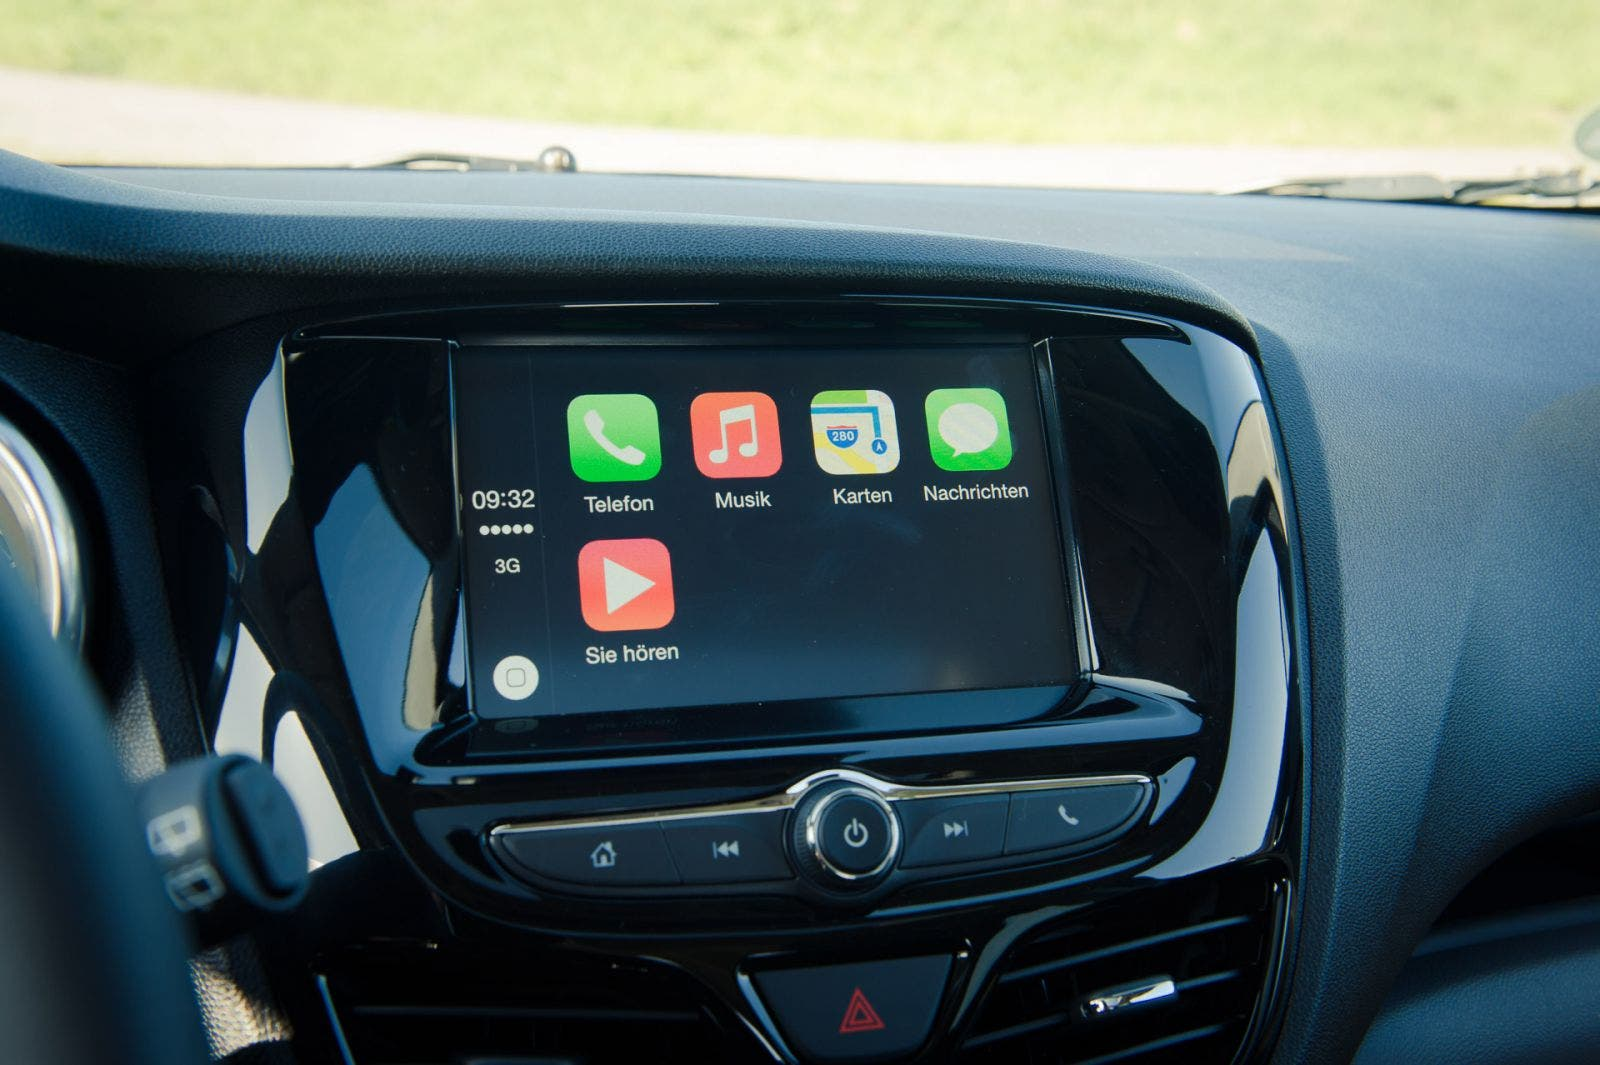 Apple CarPlay Infotainment-System - 2015 Opel KARL